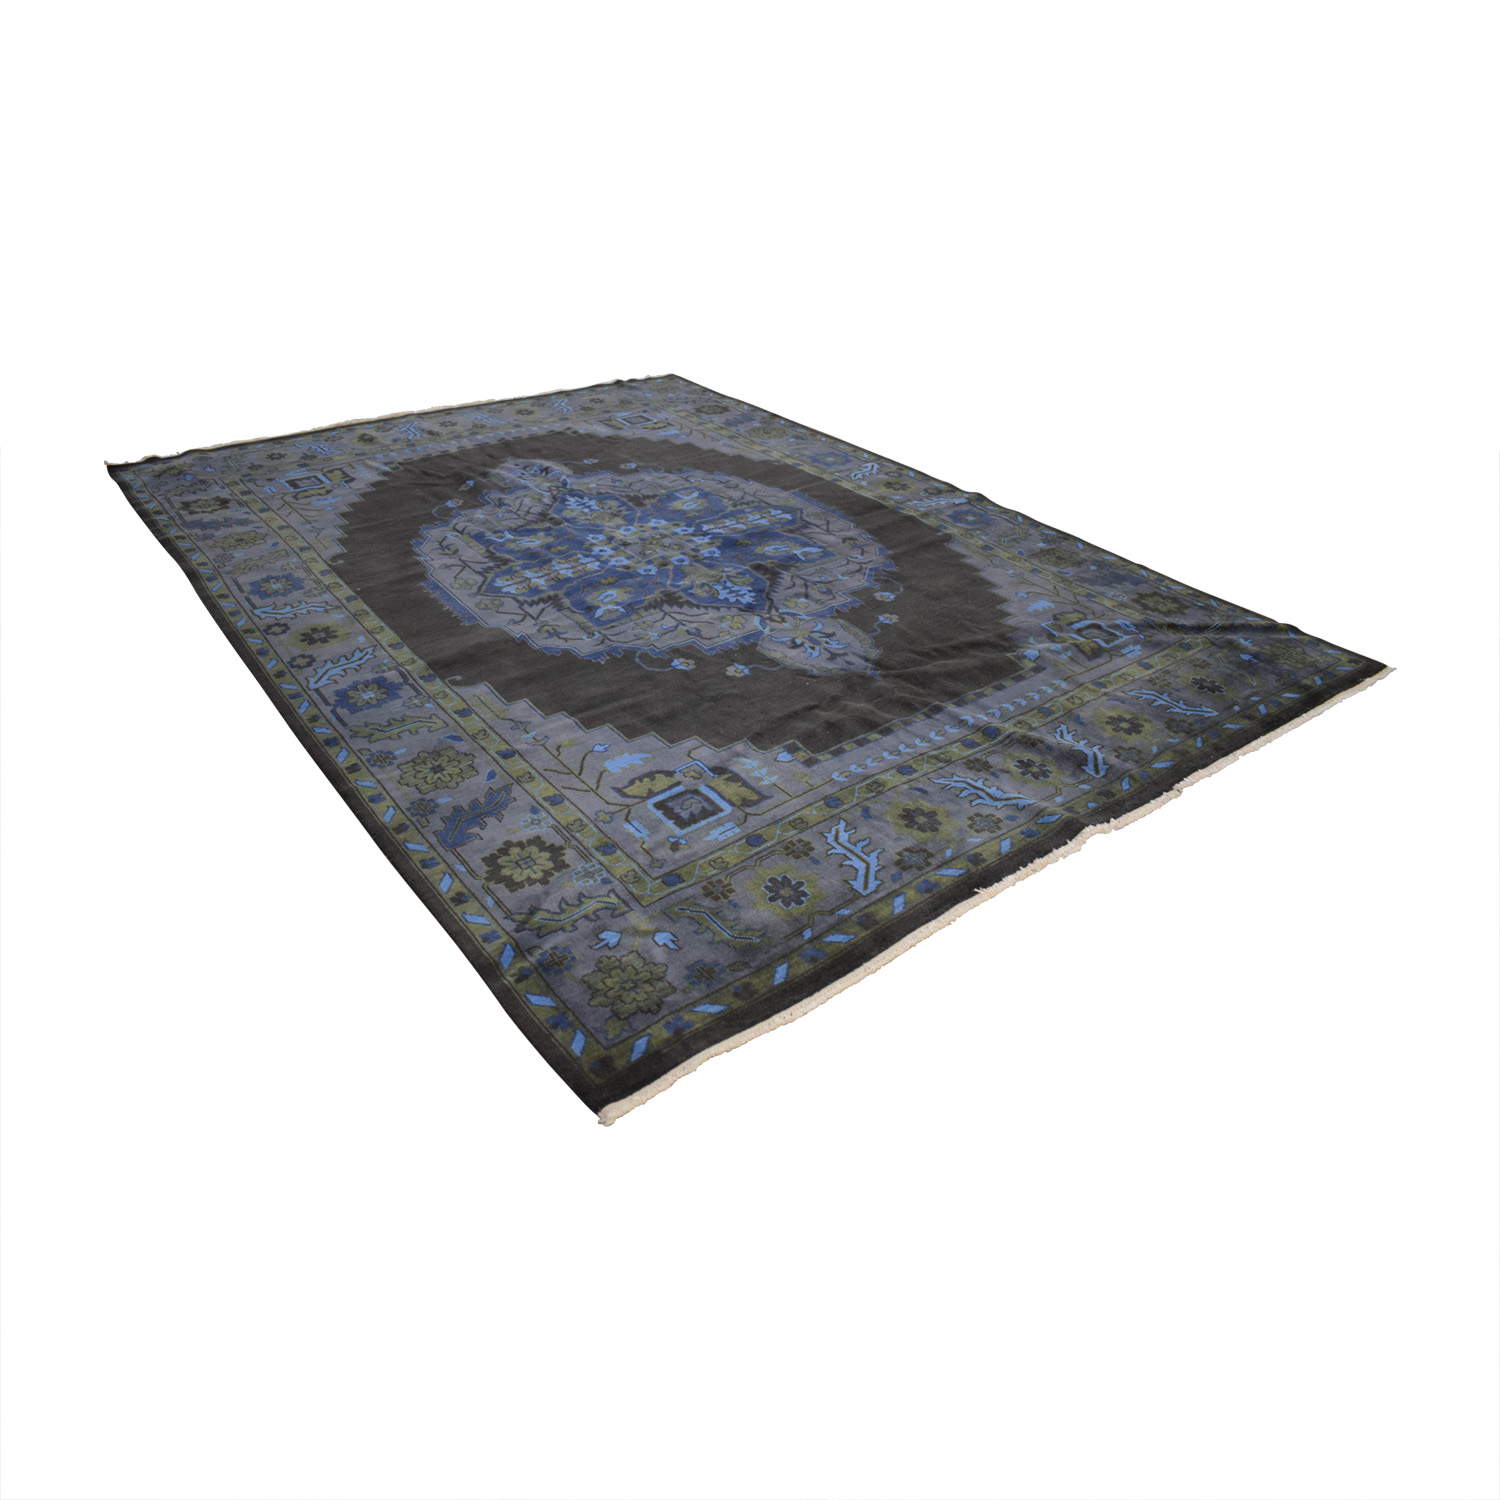 Obeetee Obeetee Handknotted Heriz Blue and Brown Rug coupon